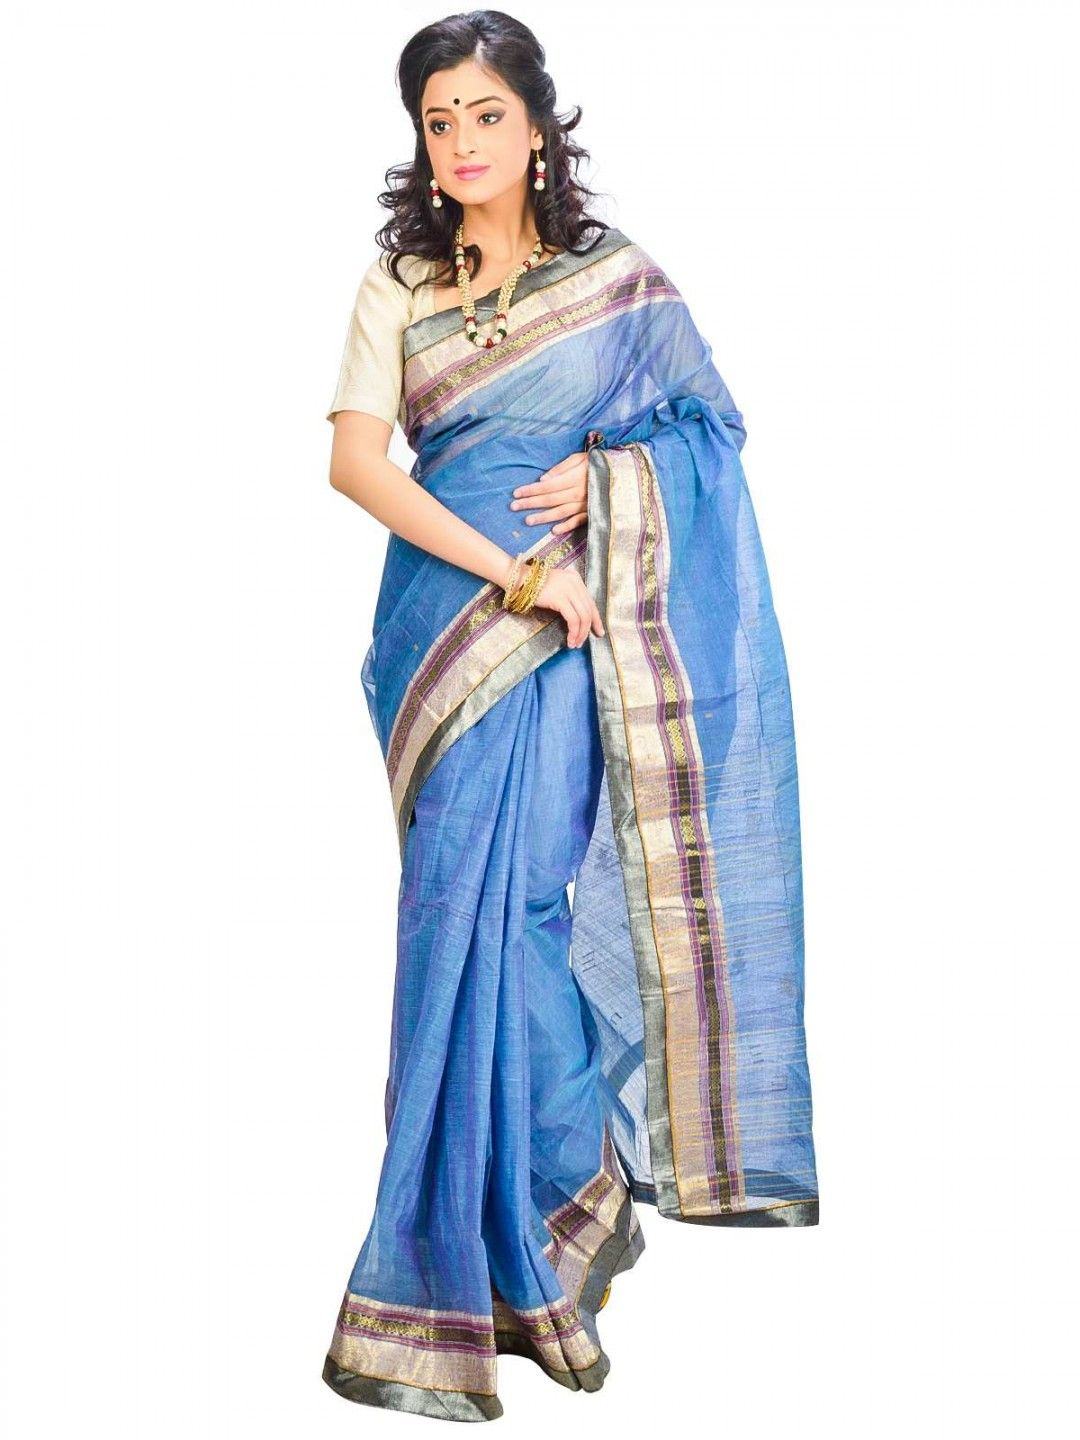 b903b6a92 Blue Color Self Design Saree - Online shopping to buy blue color self  design indian ethnic wear fashion saree with unstitched blouse piece -  dsch013 in ...